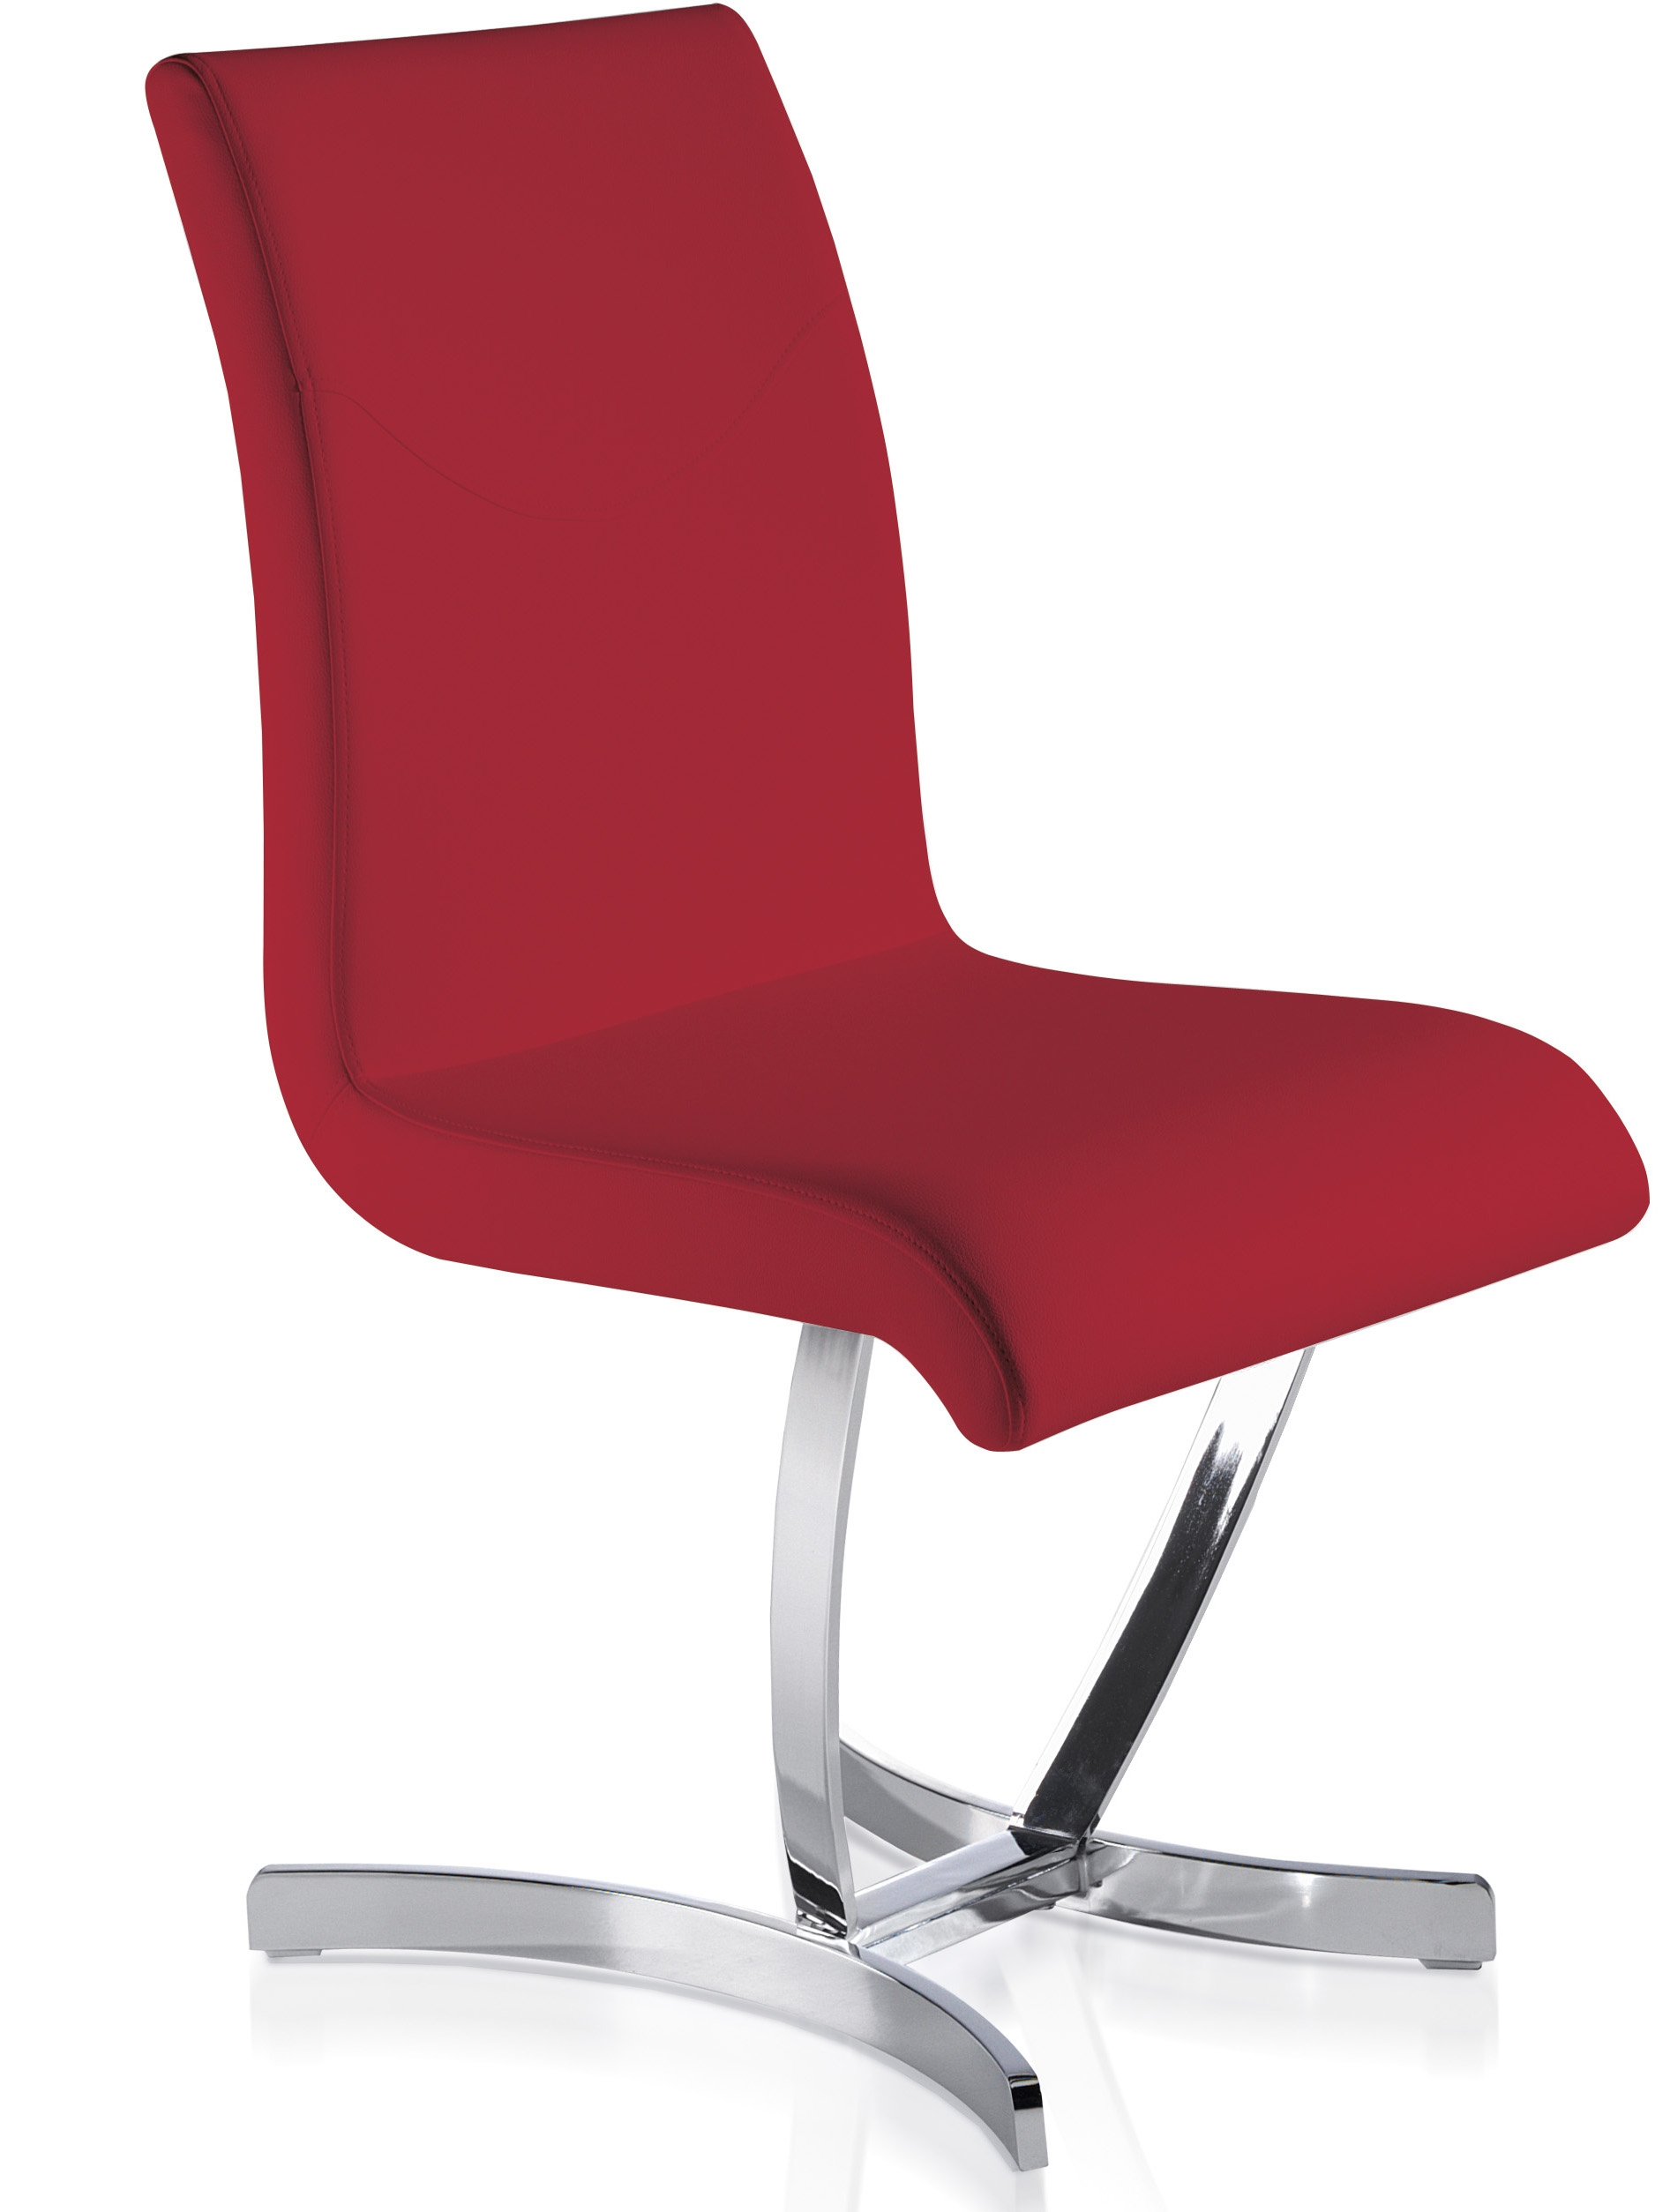 Chaise design rouge sipa - Chaise rouge design ...